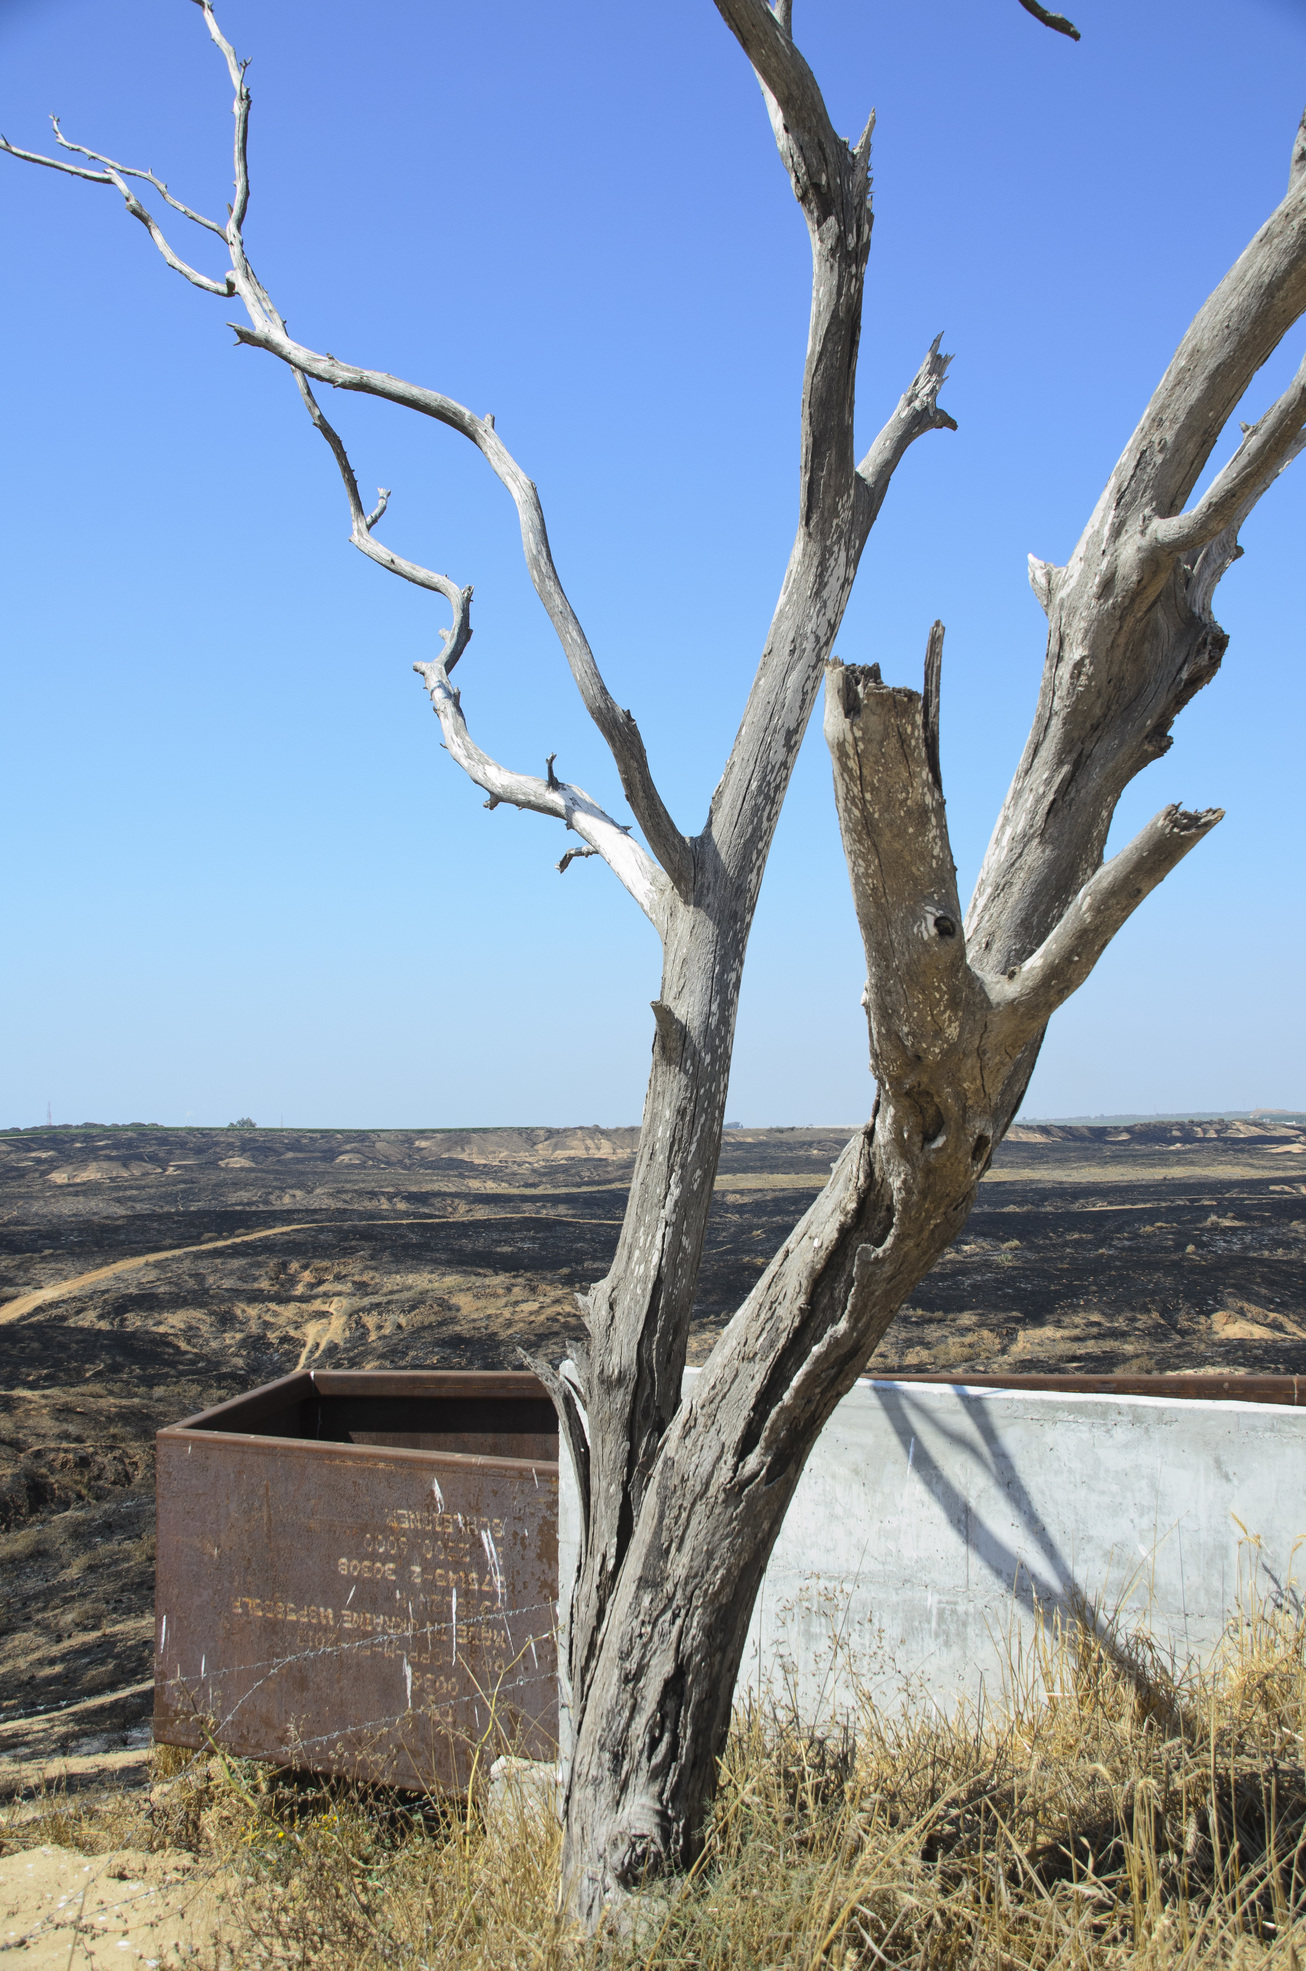 The observation post at the Be'eri Crater Nature Reserve. Photo taken by Dondi Schwartz, 56, of Kibbutz Be'eri, who owns a video and photography studio, participates in photo exhibitions and works for Be'eri Printers